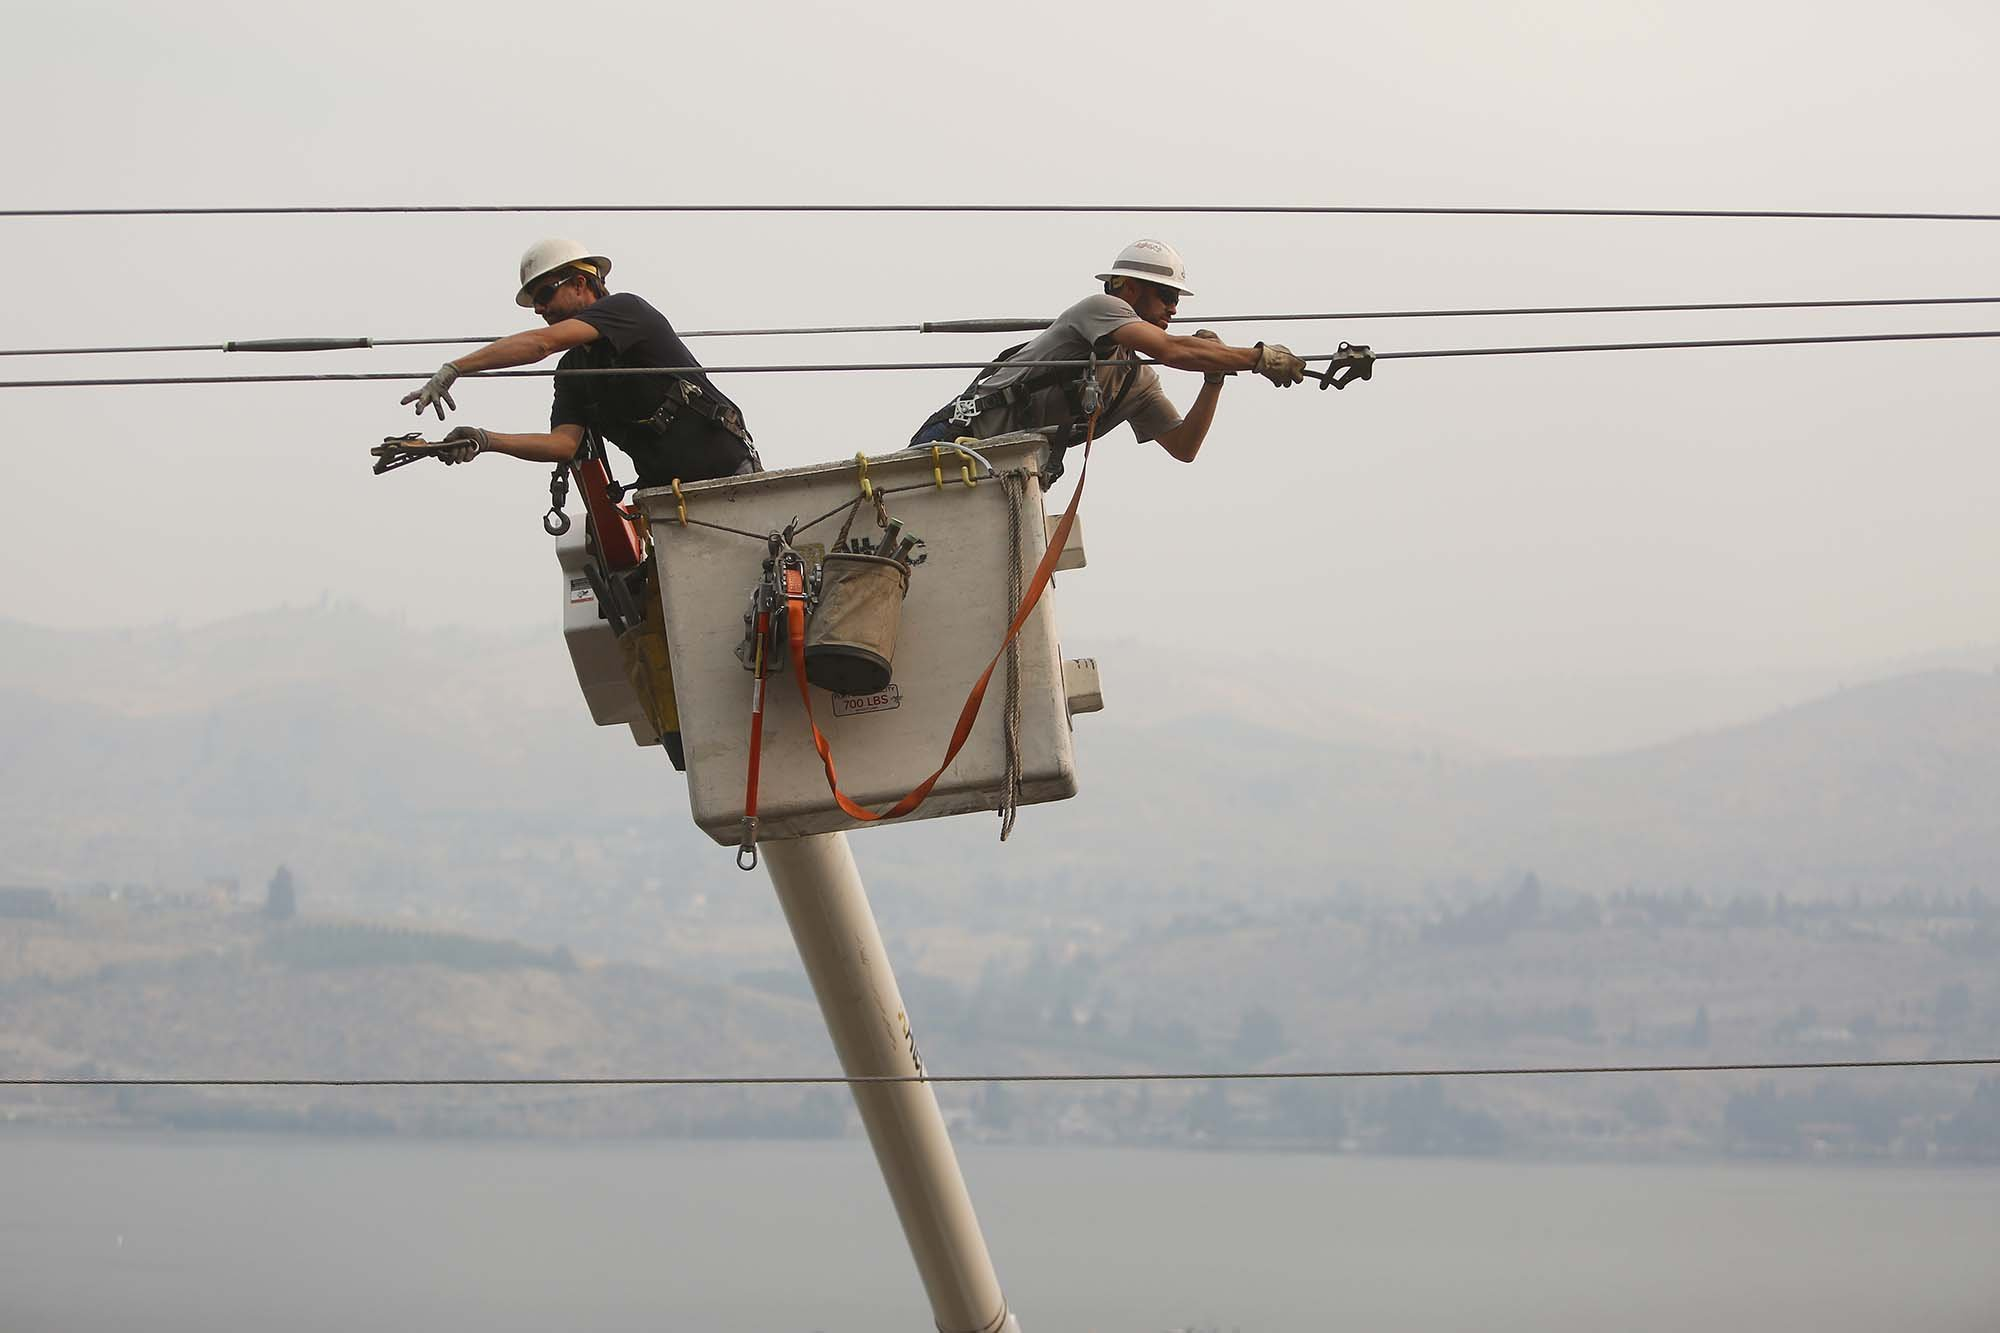 Chelan County PUD linesman Jared Montgomery, left, and Joel Macintosh, right, work on restoring power to the city of Chelan early on Sunday morning as smoke fills the lake, Aug. 16, 2015. Some 9,000 homes were without power last night, and linesman worked through the night to as power is being restored to the city.